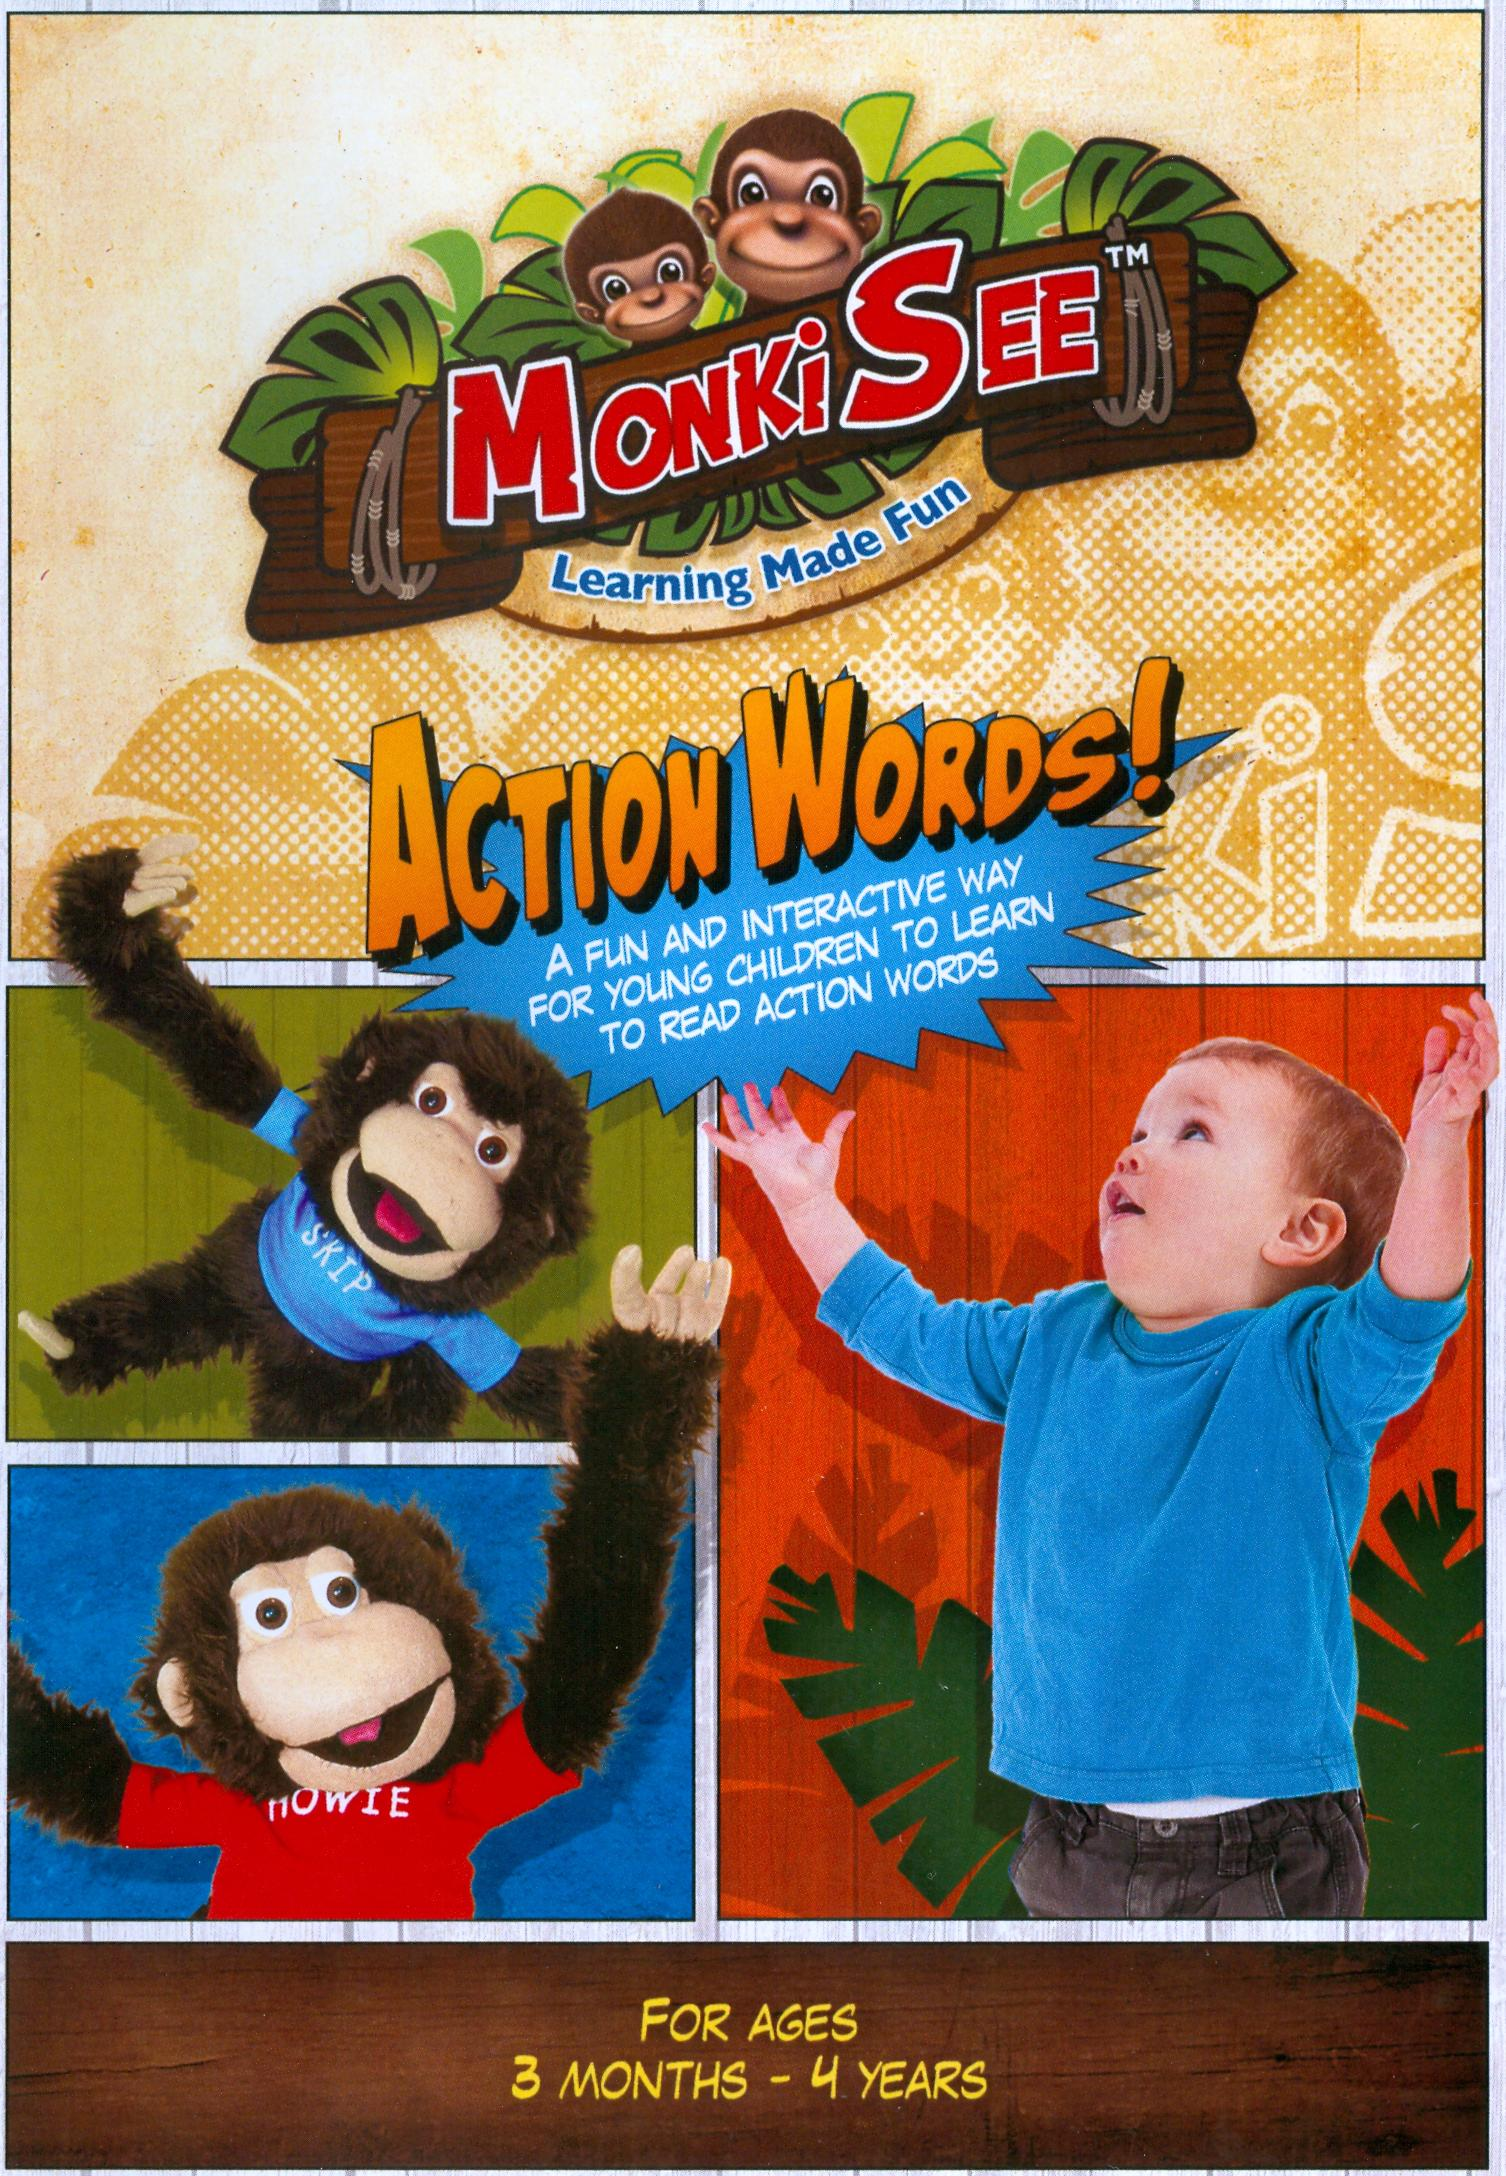 MonkiSee: Action Words